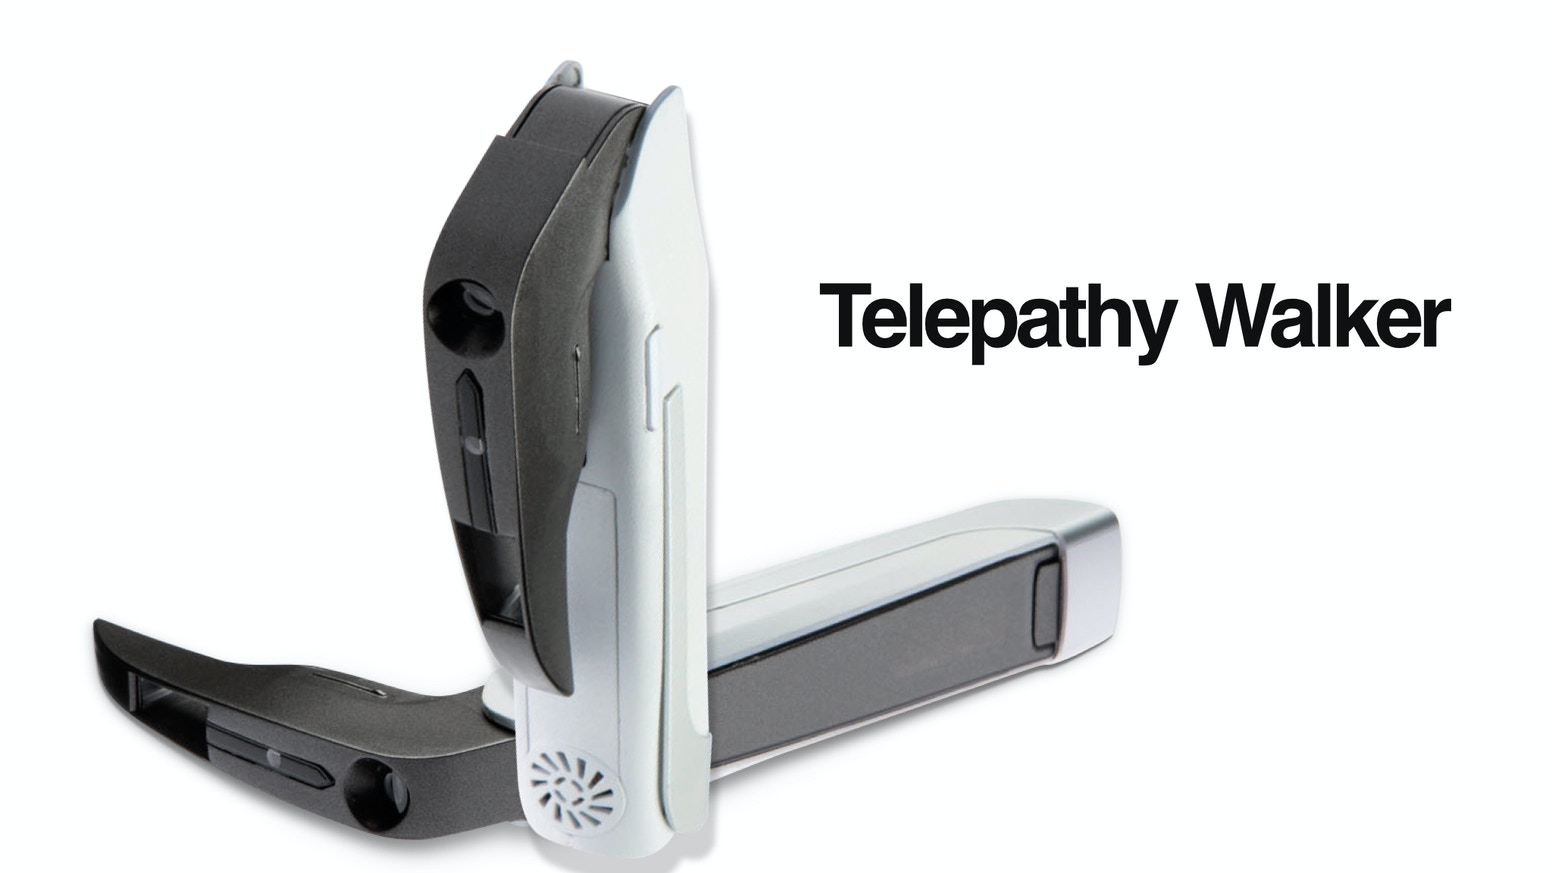 Telepathy Walker is the world's first smart eyewear specifically developed for navigation and local discoveries. Make your everyday walk smarter and more fun with Telepathy Walker's highly intuitive UI, sunlight-proof display, and handsfree design.